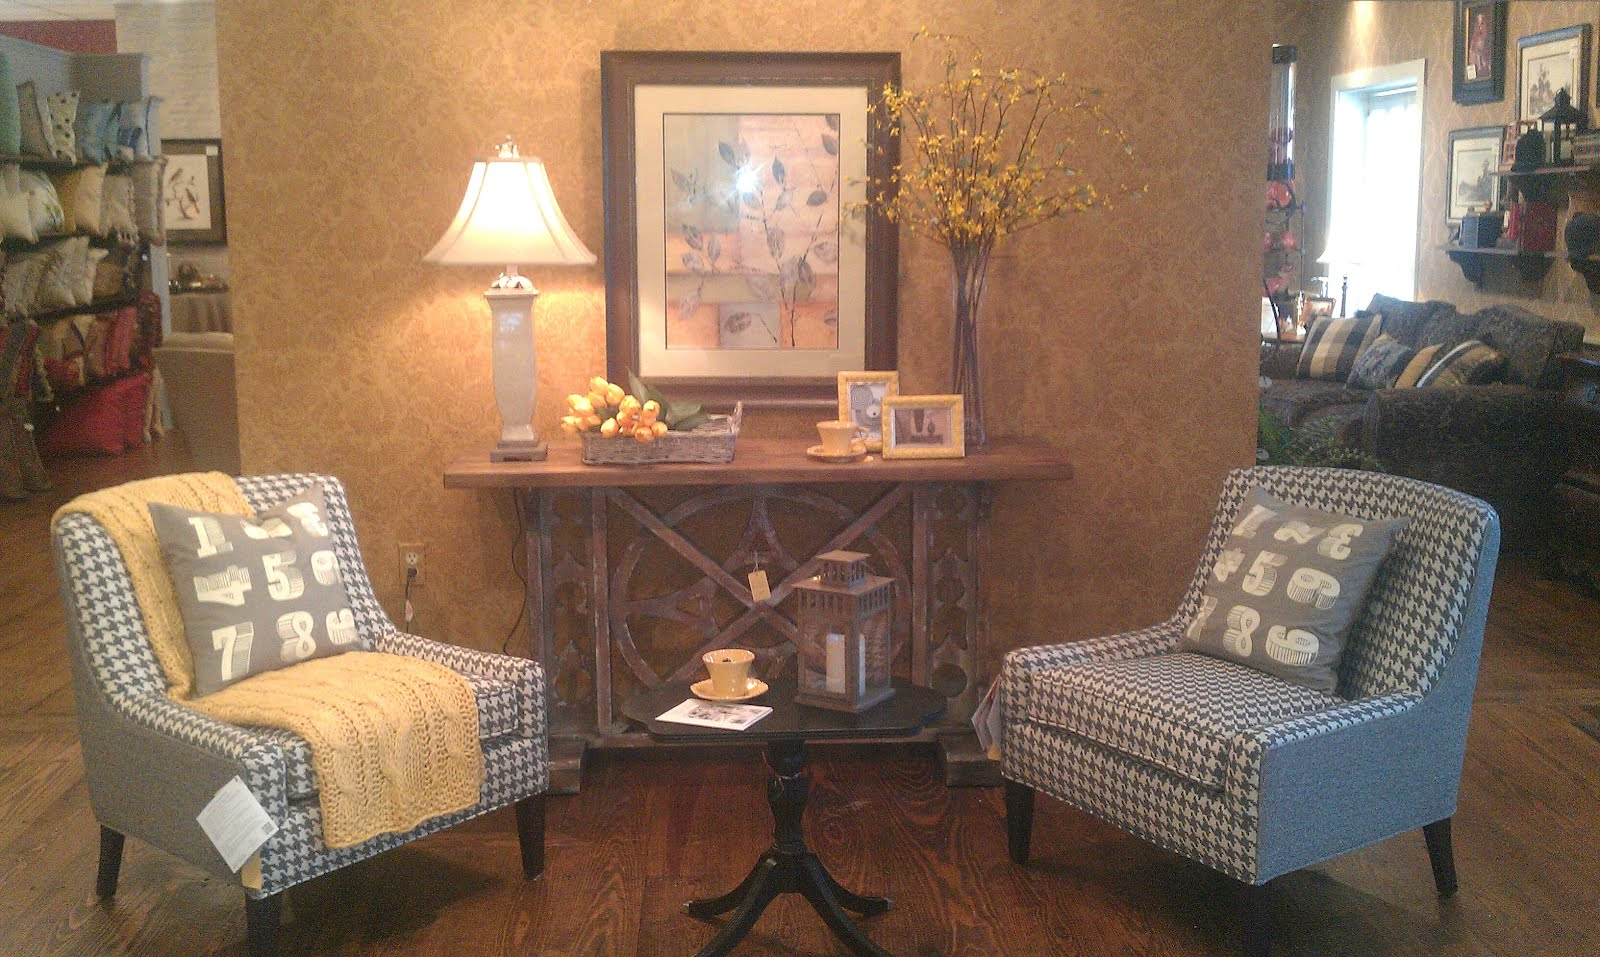 Facing two gray and white houndstooth chairs accented with a yellow